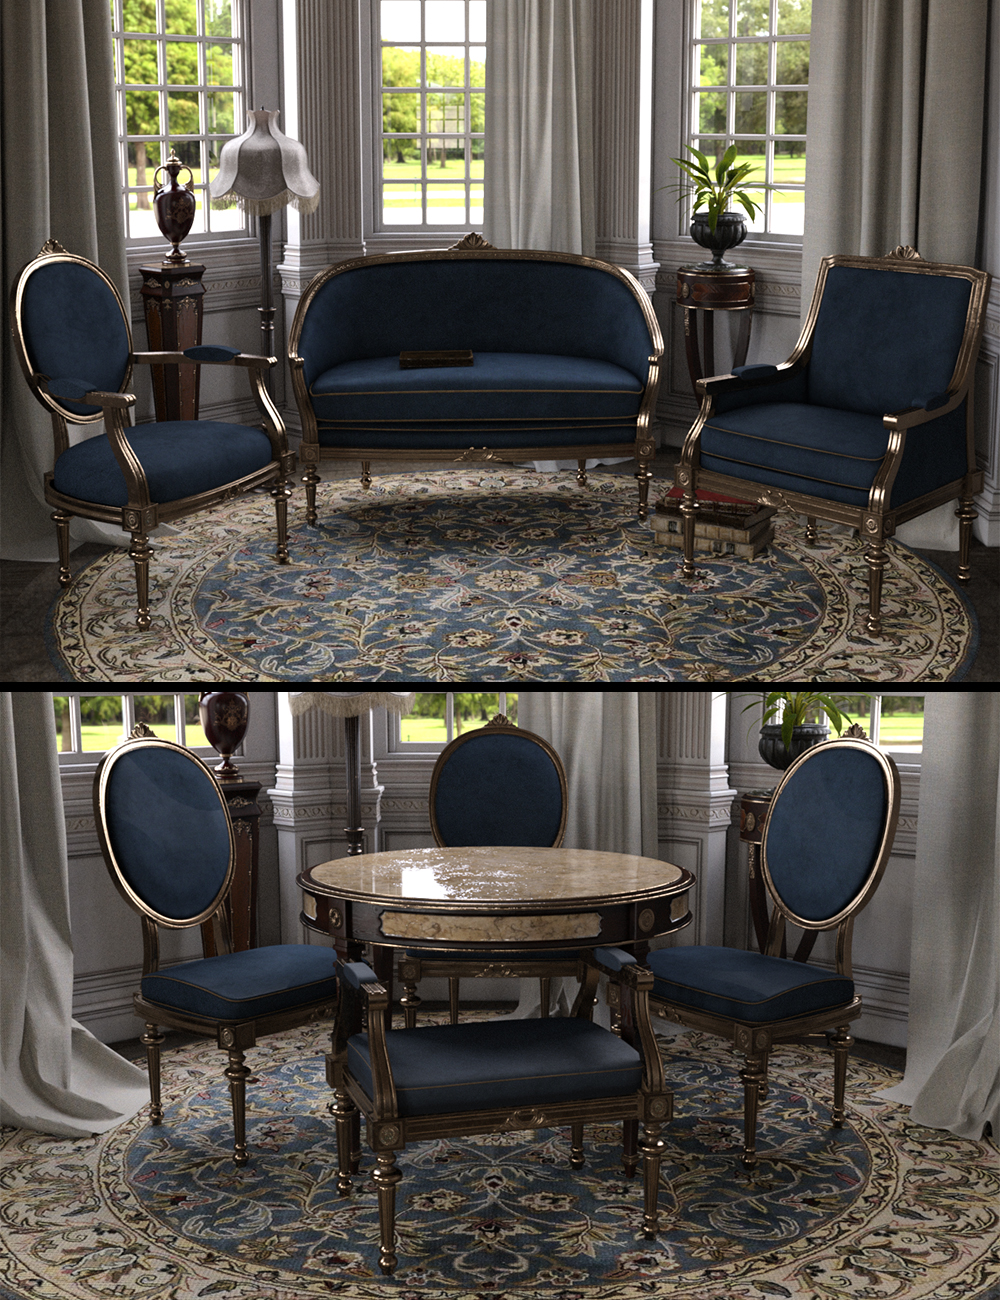 Vintage Furniture Iray by: LaurieS, 3D Models by Daz 3D